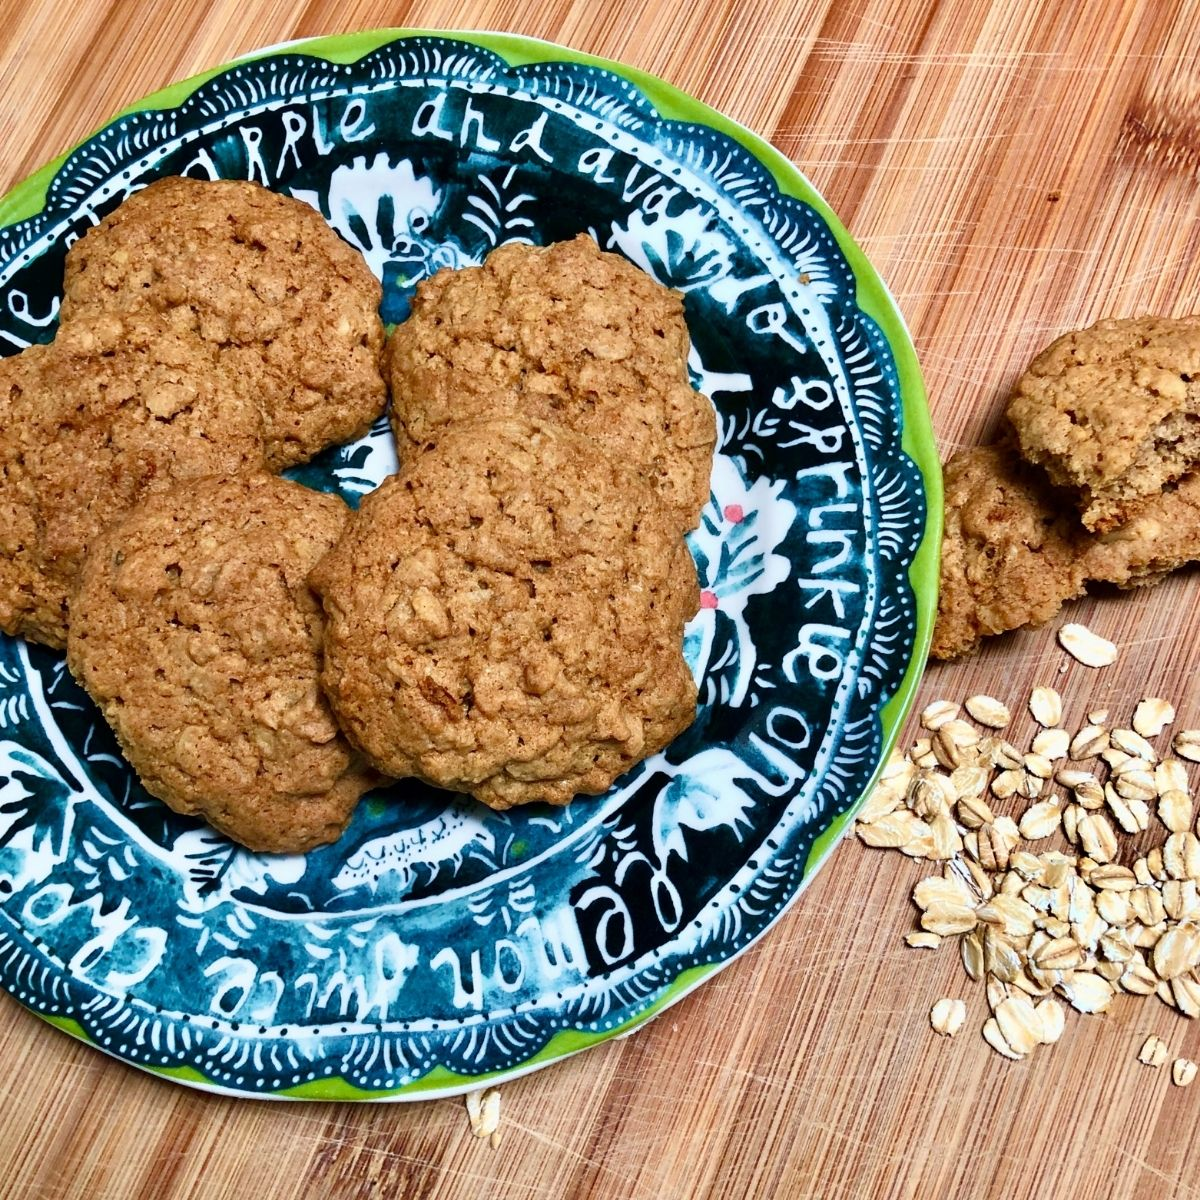 Simple vegan old fashioned oatmeal cookies on a plate.